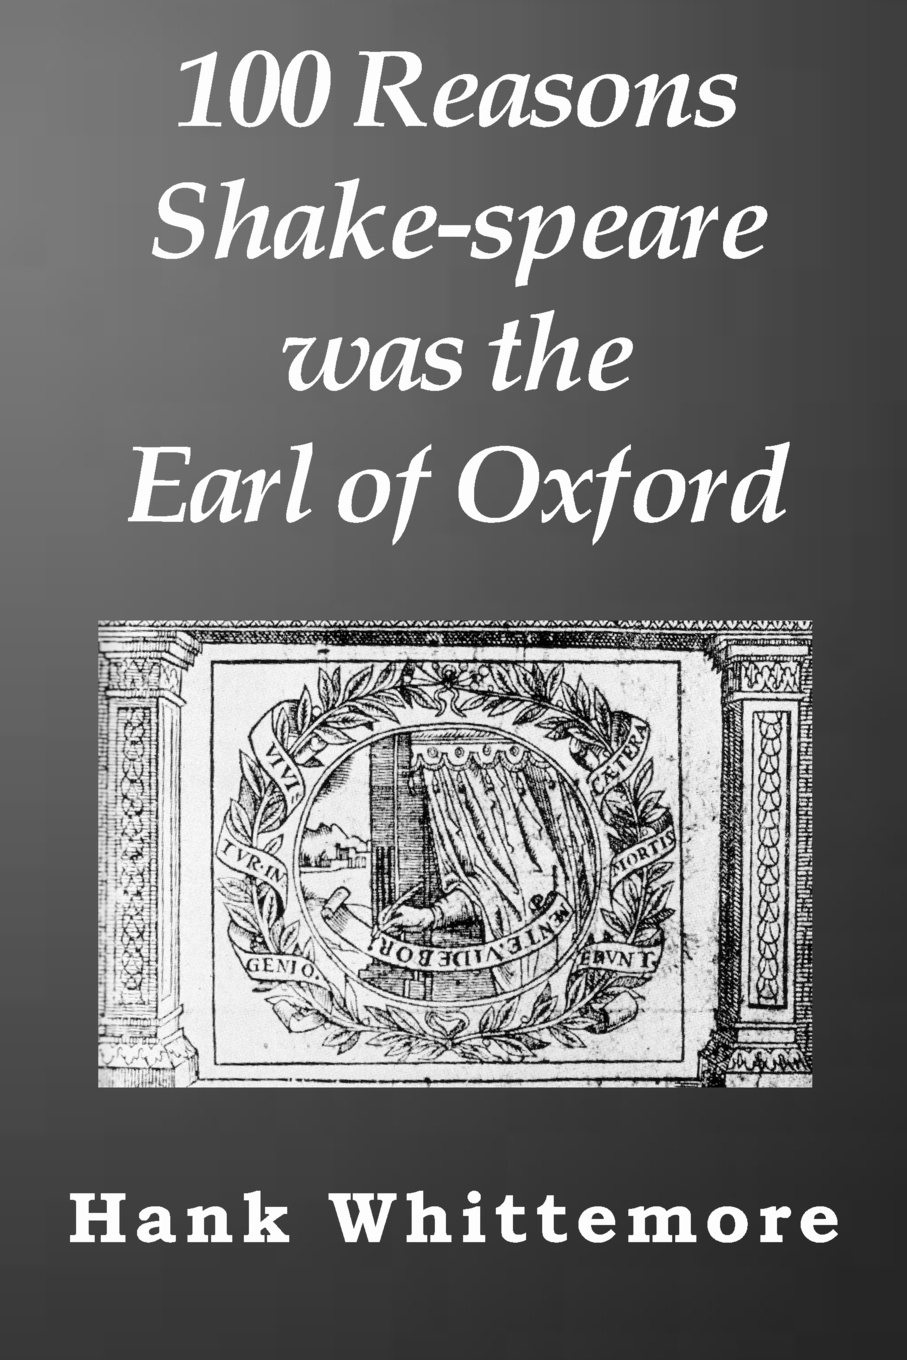 Hank Whittemore 100 Reasons Shake-speare was the Earl of Oxford the new oxford shakespeare authorship companion